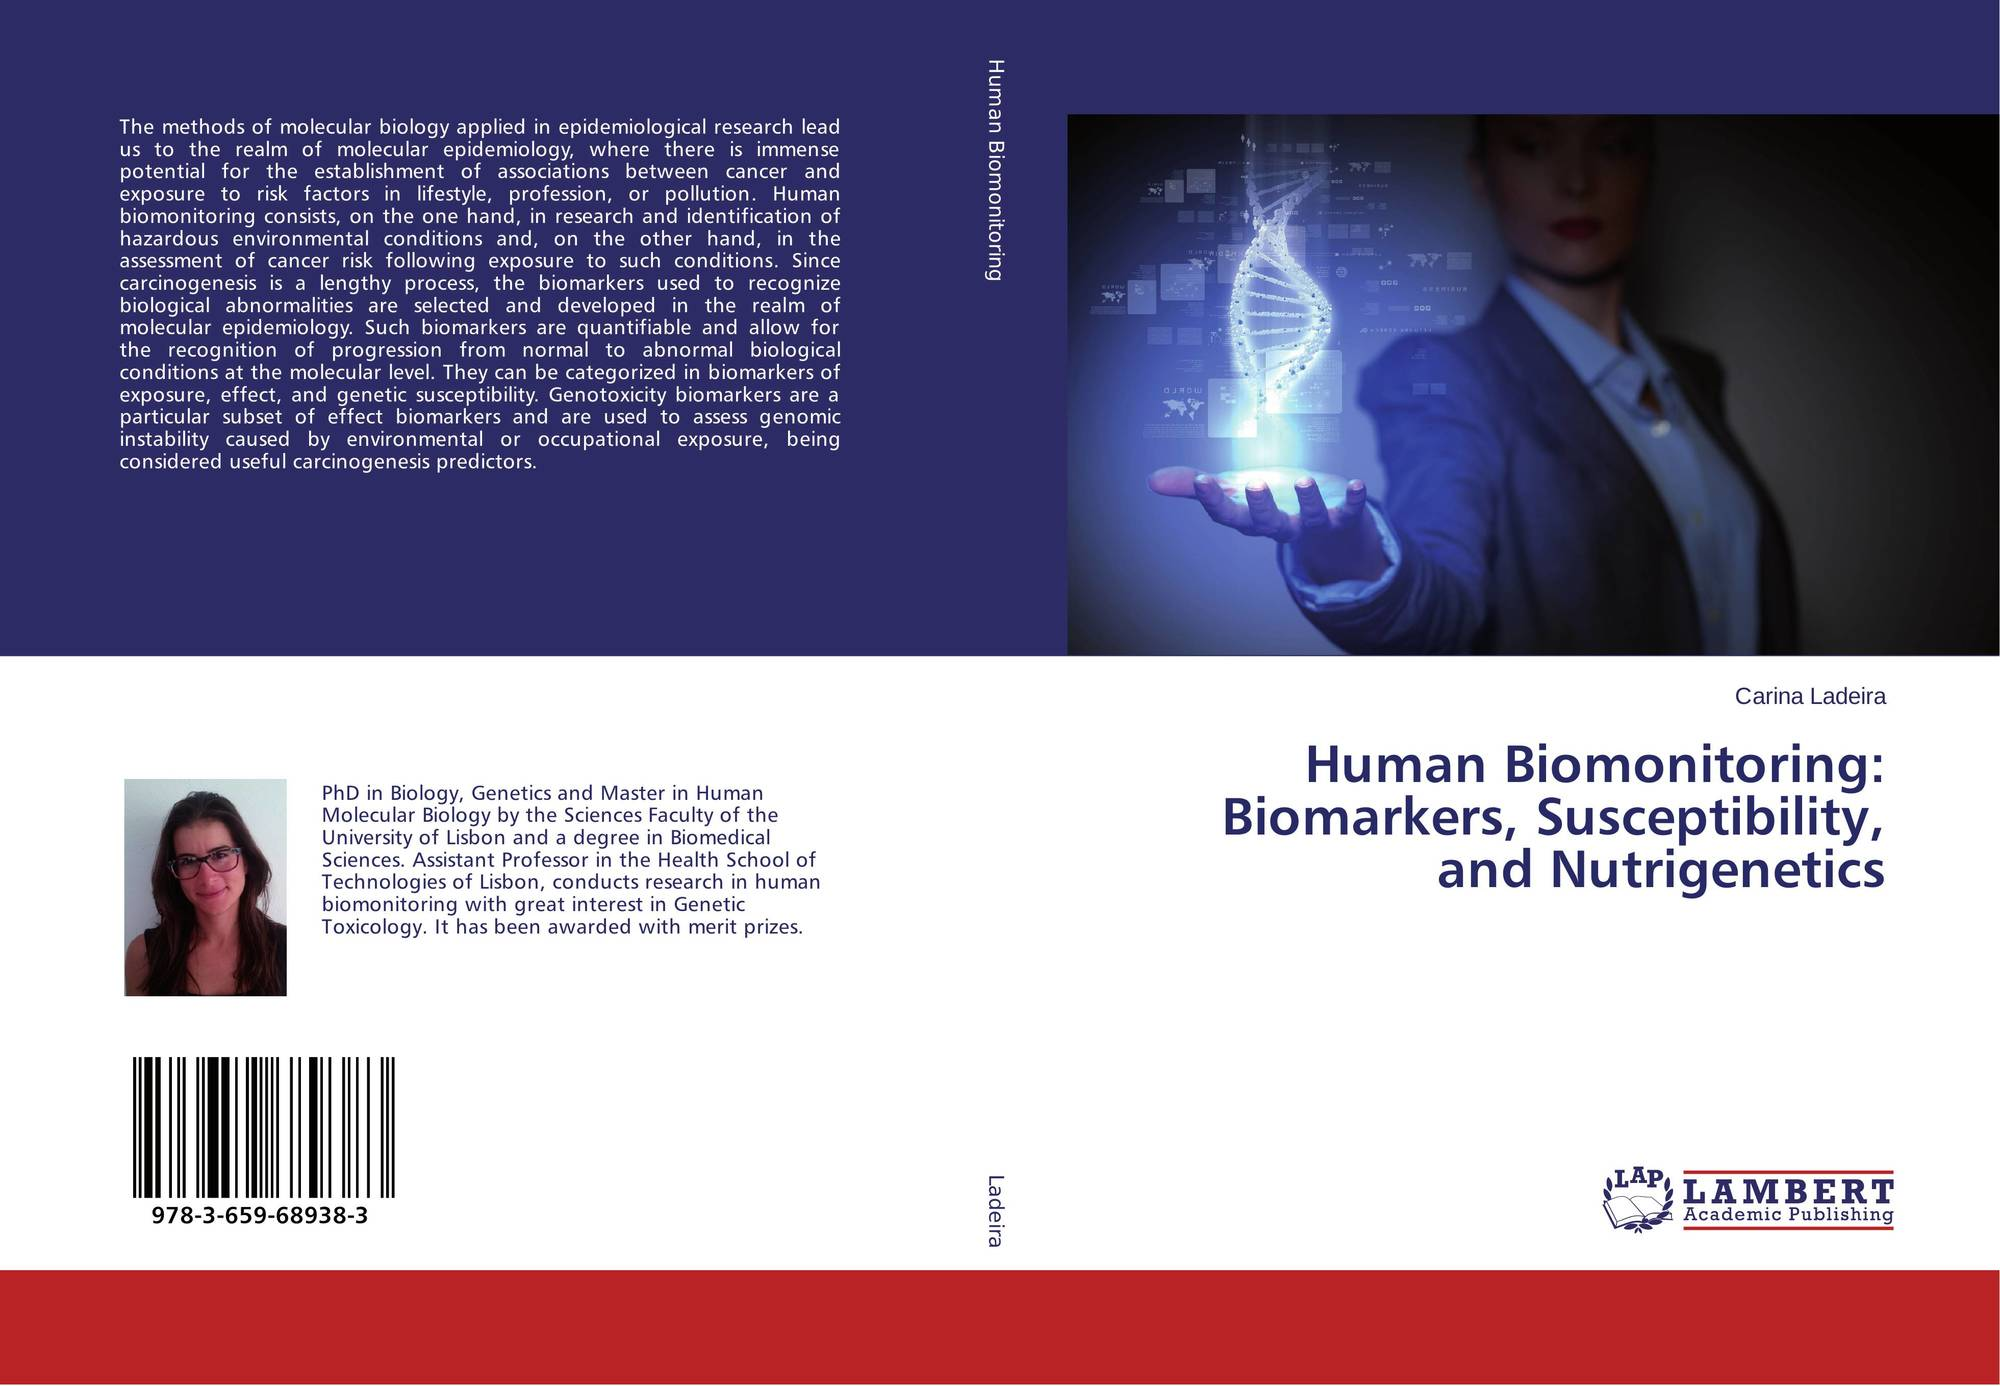 84787a92e310b Bookcover of Human Biomonitoring  Biomarkers, Susceptibility, and  Nutrigenetics. 9783659689383